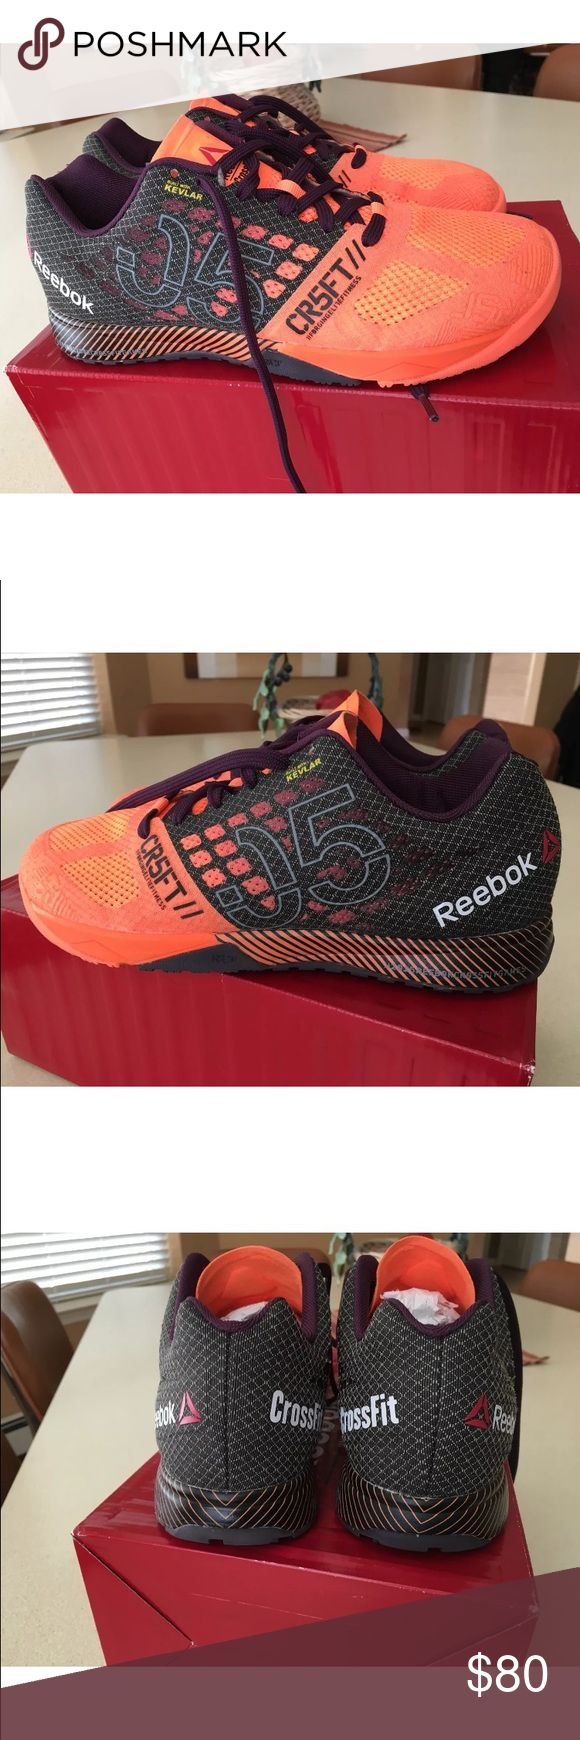 Reebok Crossfit Nano 5.0 Sneakers Bright orange sneakers with dark purple, dark gray and black accents! These shoes are light, comfortable and great for weight lifting or crossfit. They come with two sets of laces, one orange and one dark purple. Sold with both laces and box. New condition! Reebok Shoes Sneakers